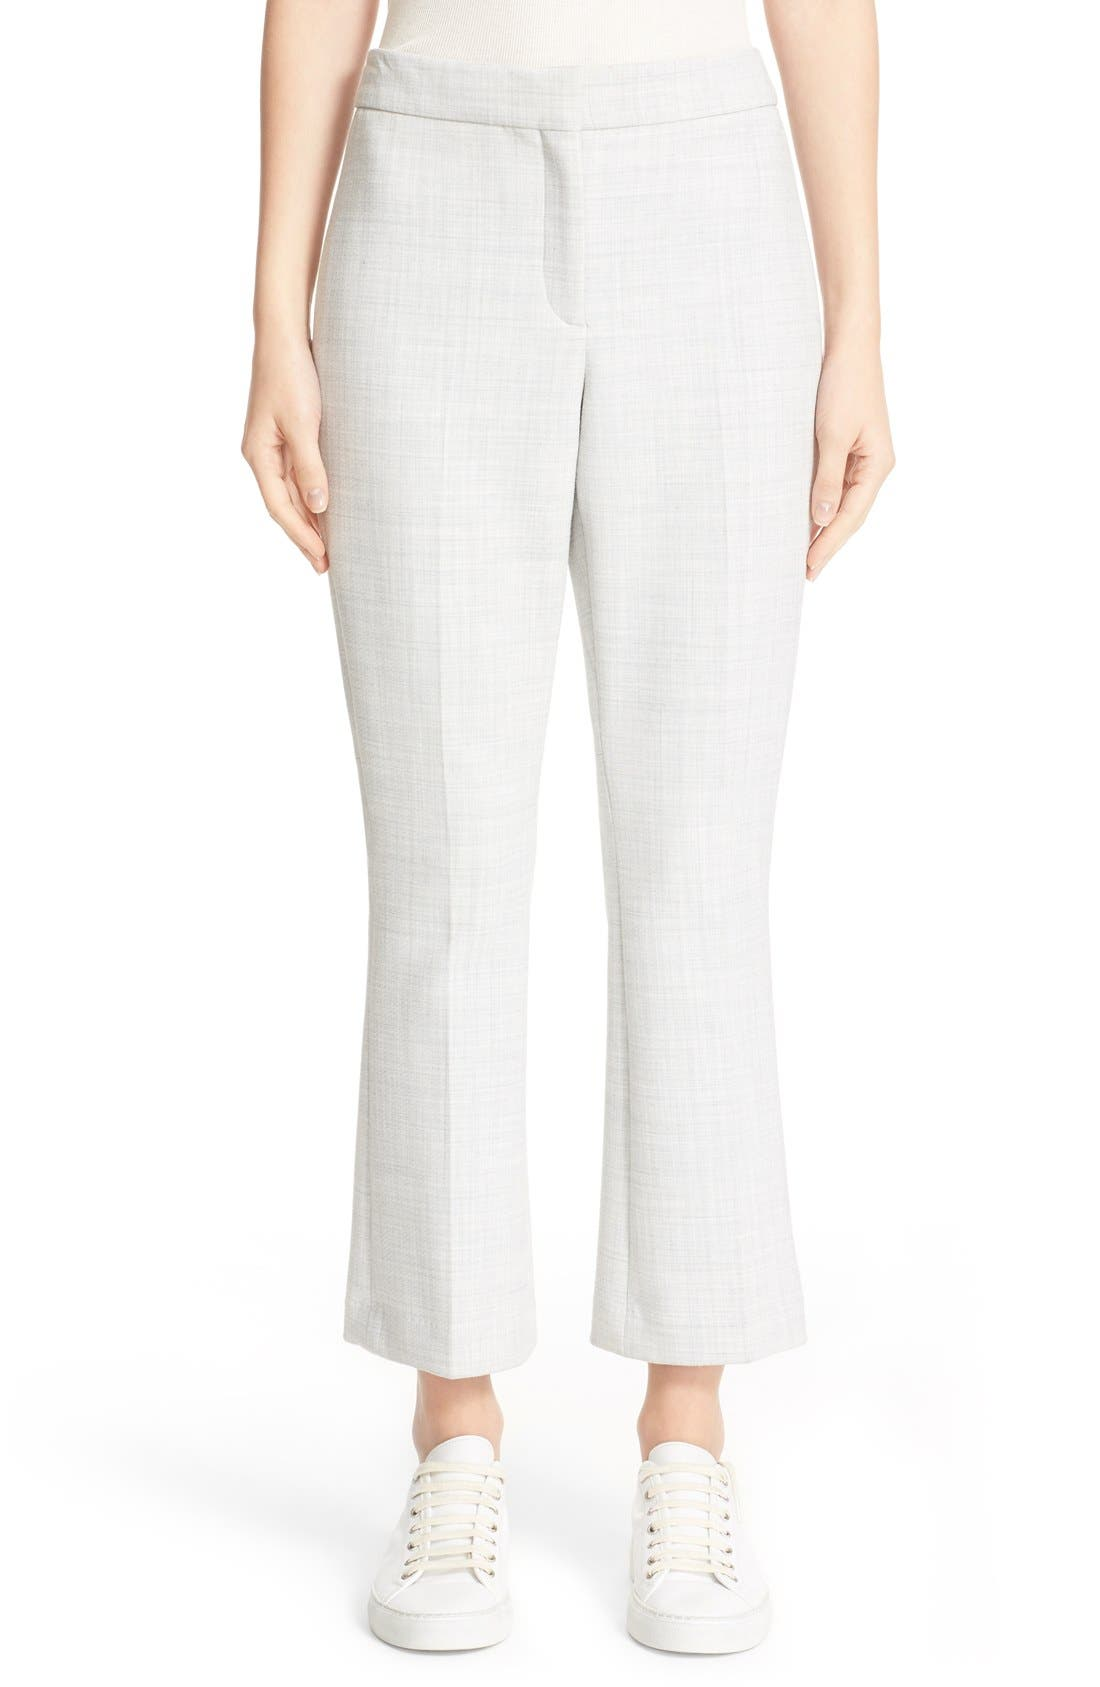 THEORY 'Erstina Pioneer' Crop Flare Leg Trousers, Main, color, 050